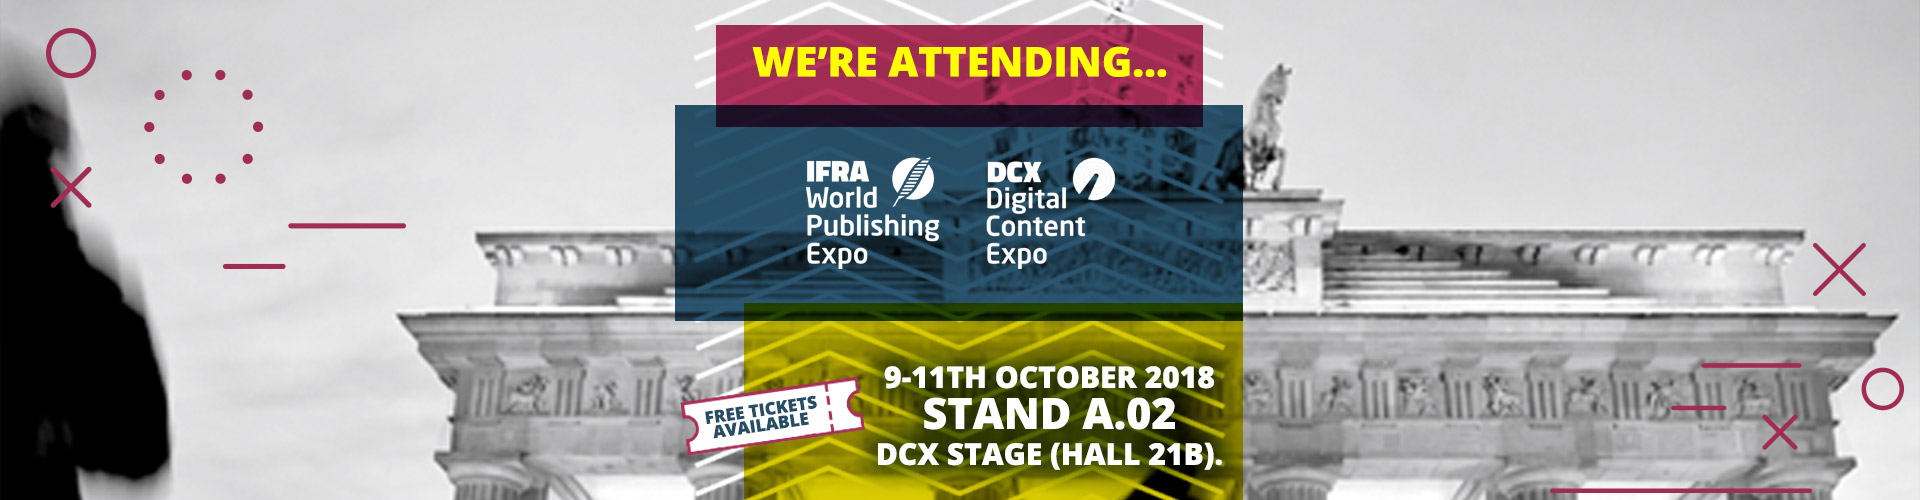 Join PageSuite in Berlin for The World Publishing & DCX Expo!